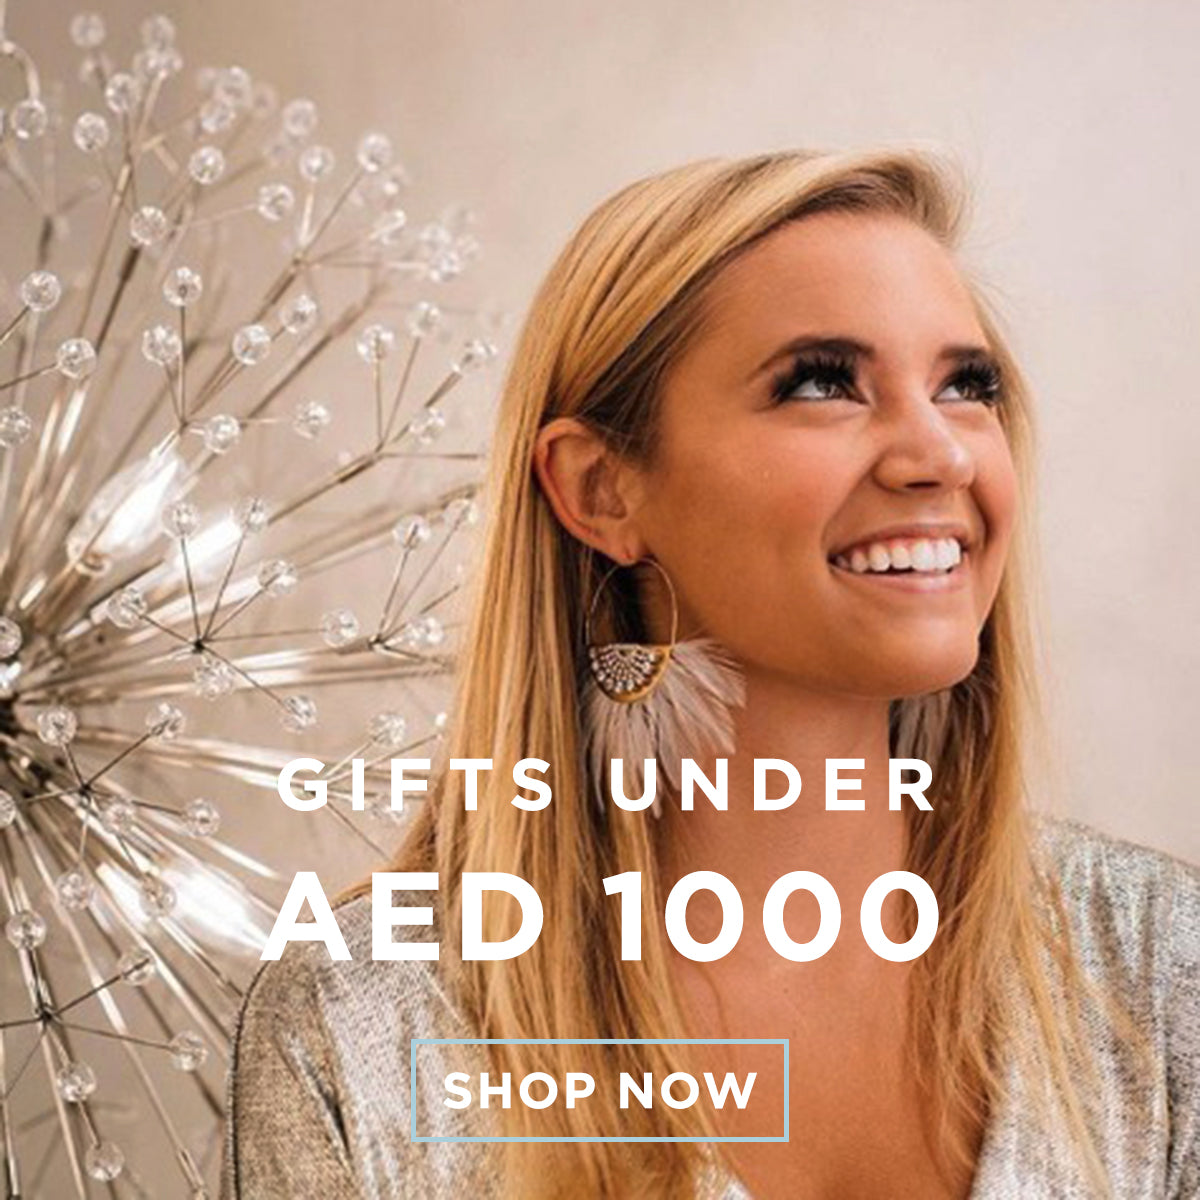 Gifts Under 1000 Dirhams | Fashion Accessories | Fine Jewelry | Clothes |